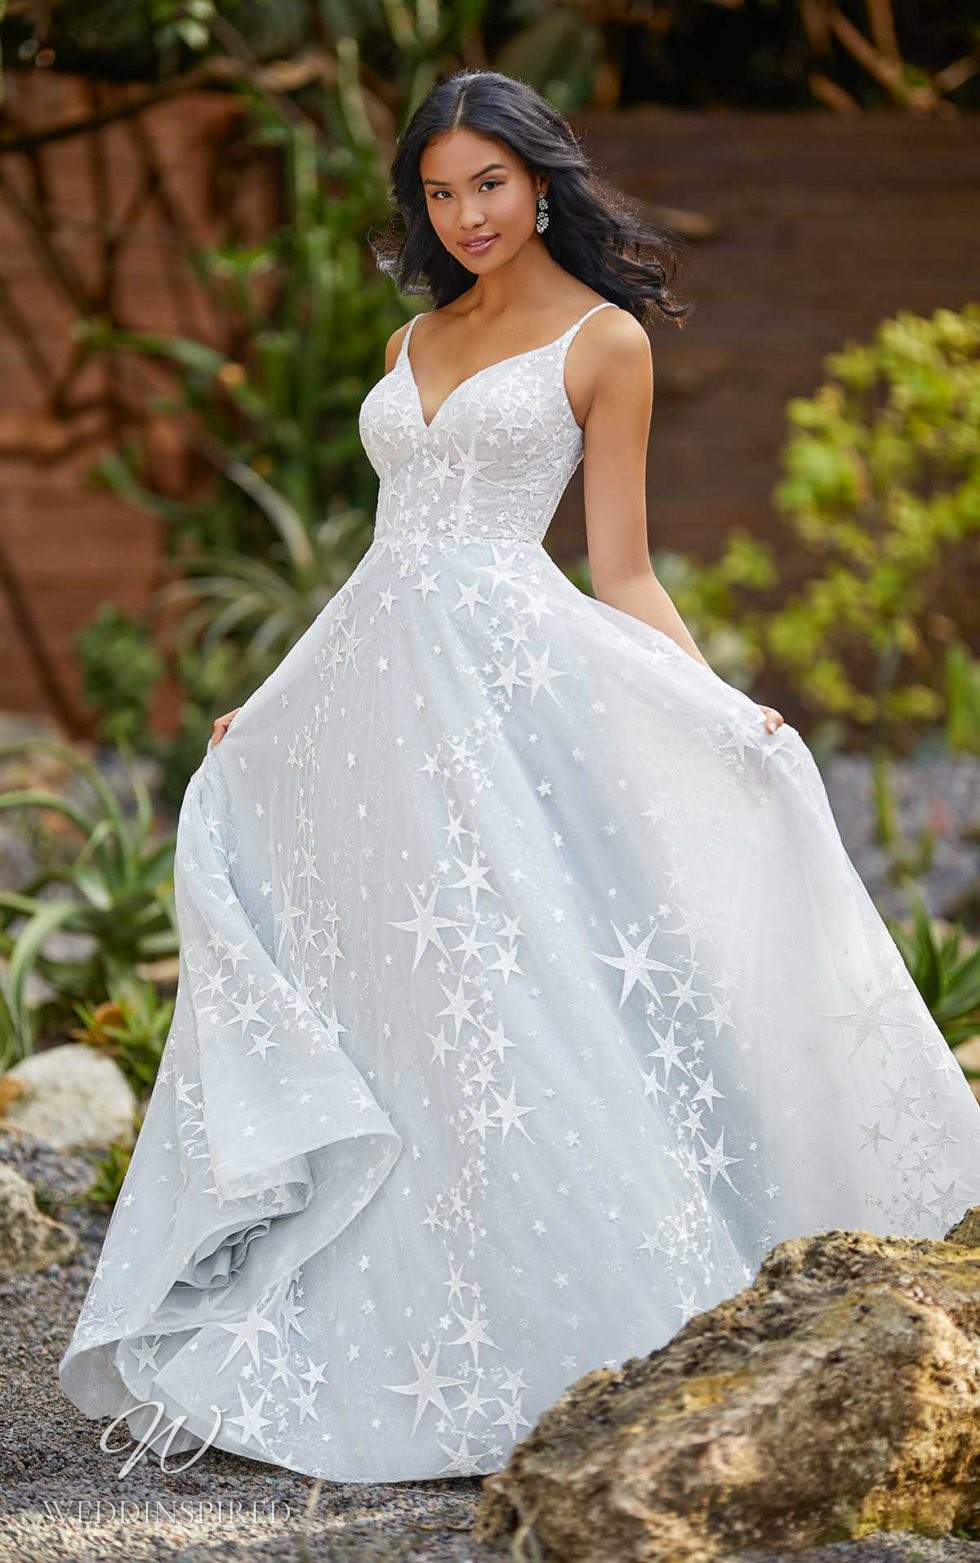 An Essense of Australia tulle A-line wedding dress with star print